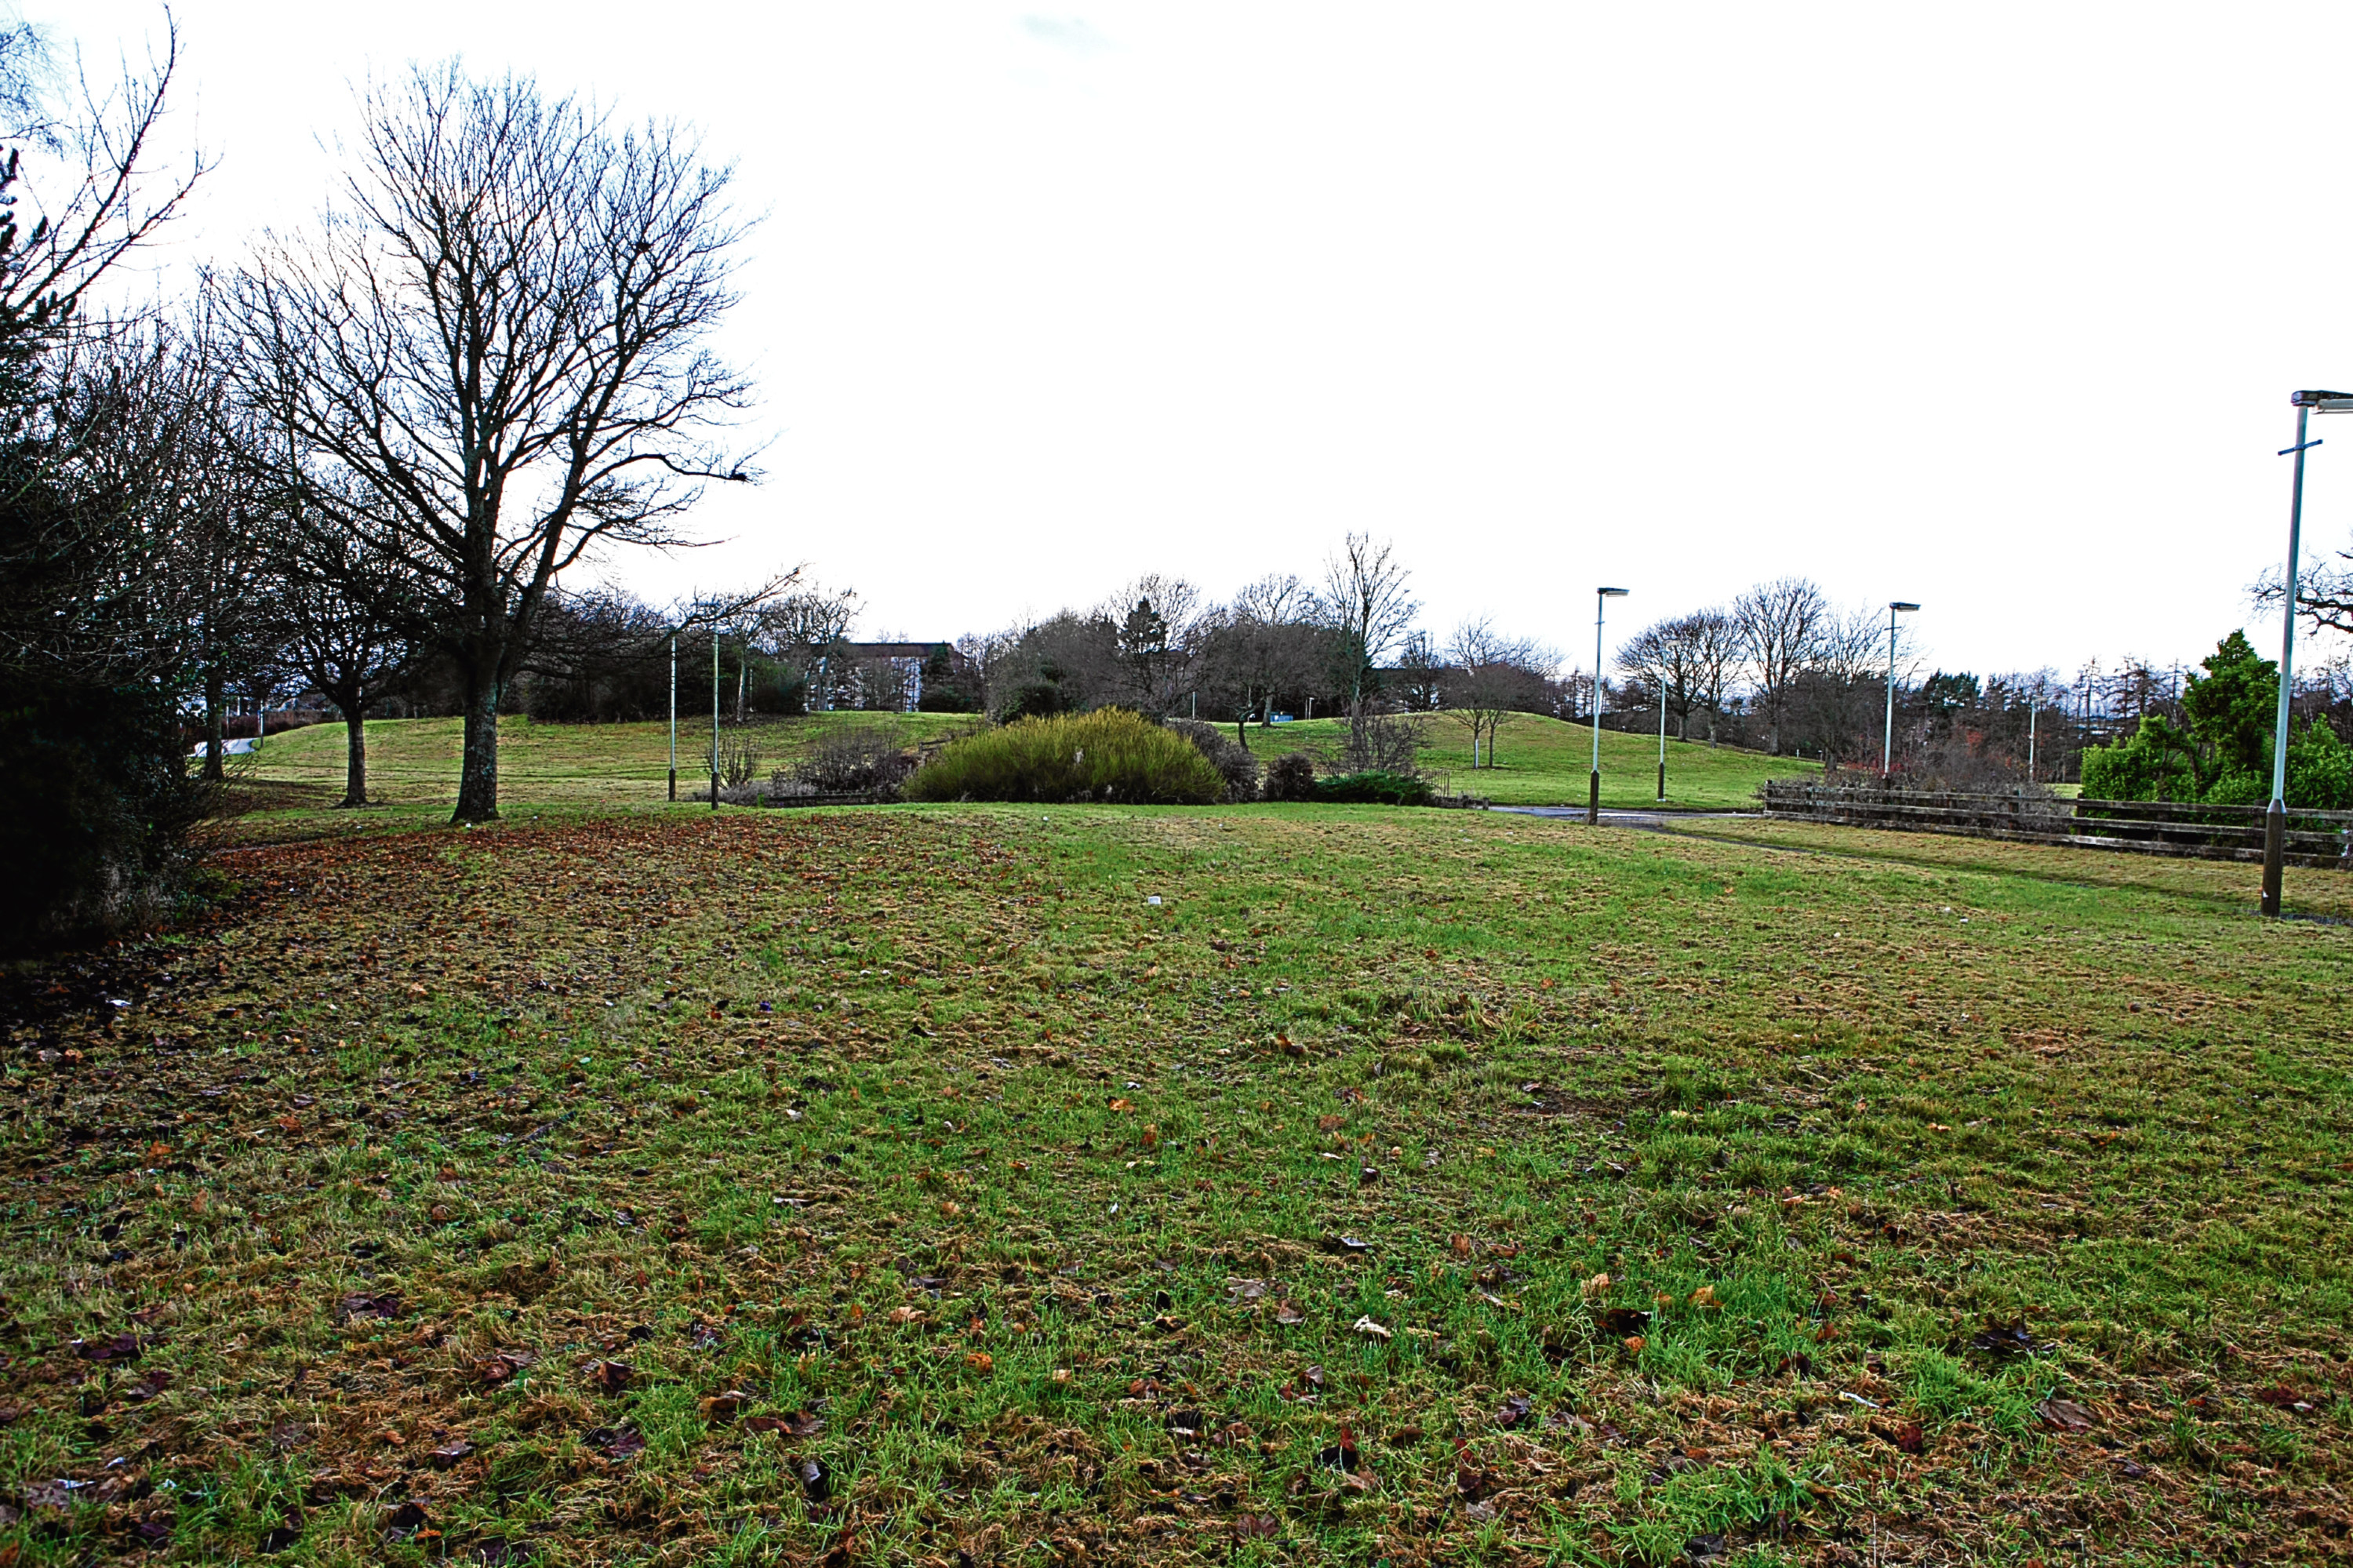 The site of the development, which will be made up of 26 three-bedroom homes.